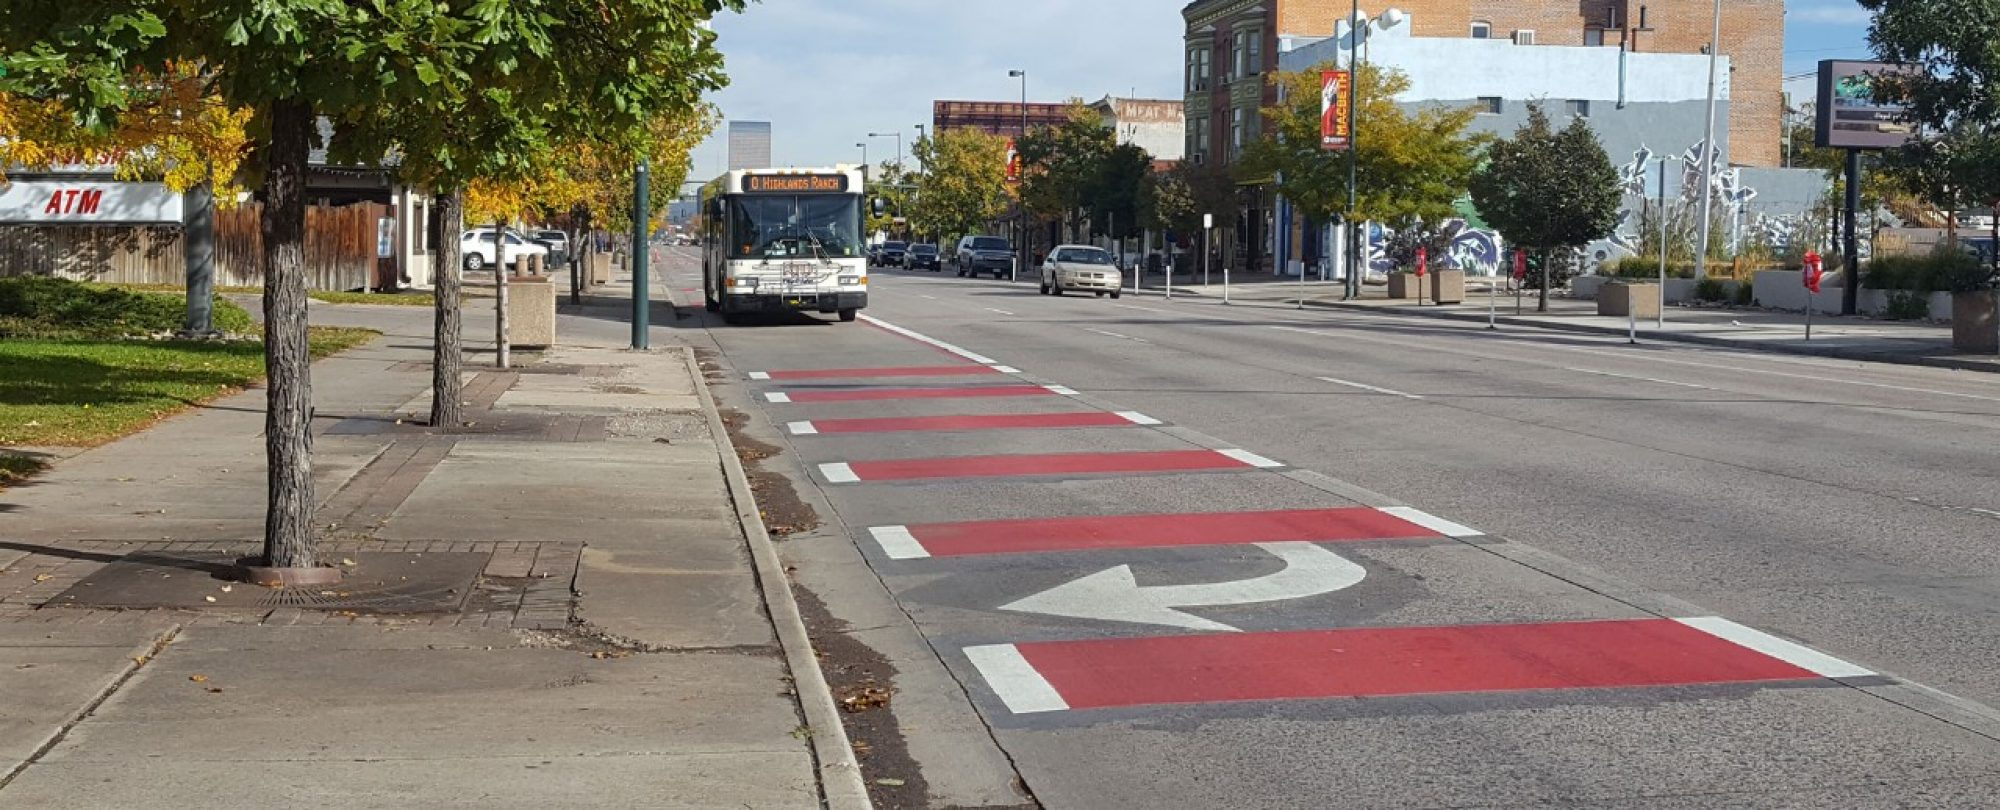 red pavement markings and bus in far right transit lane